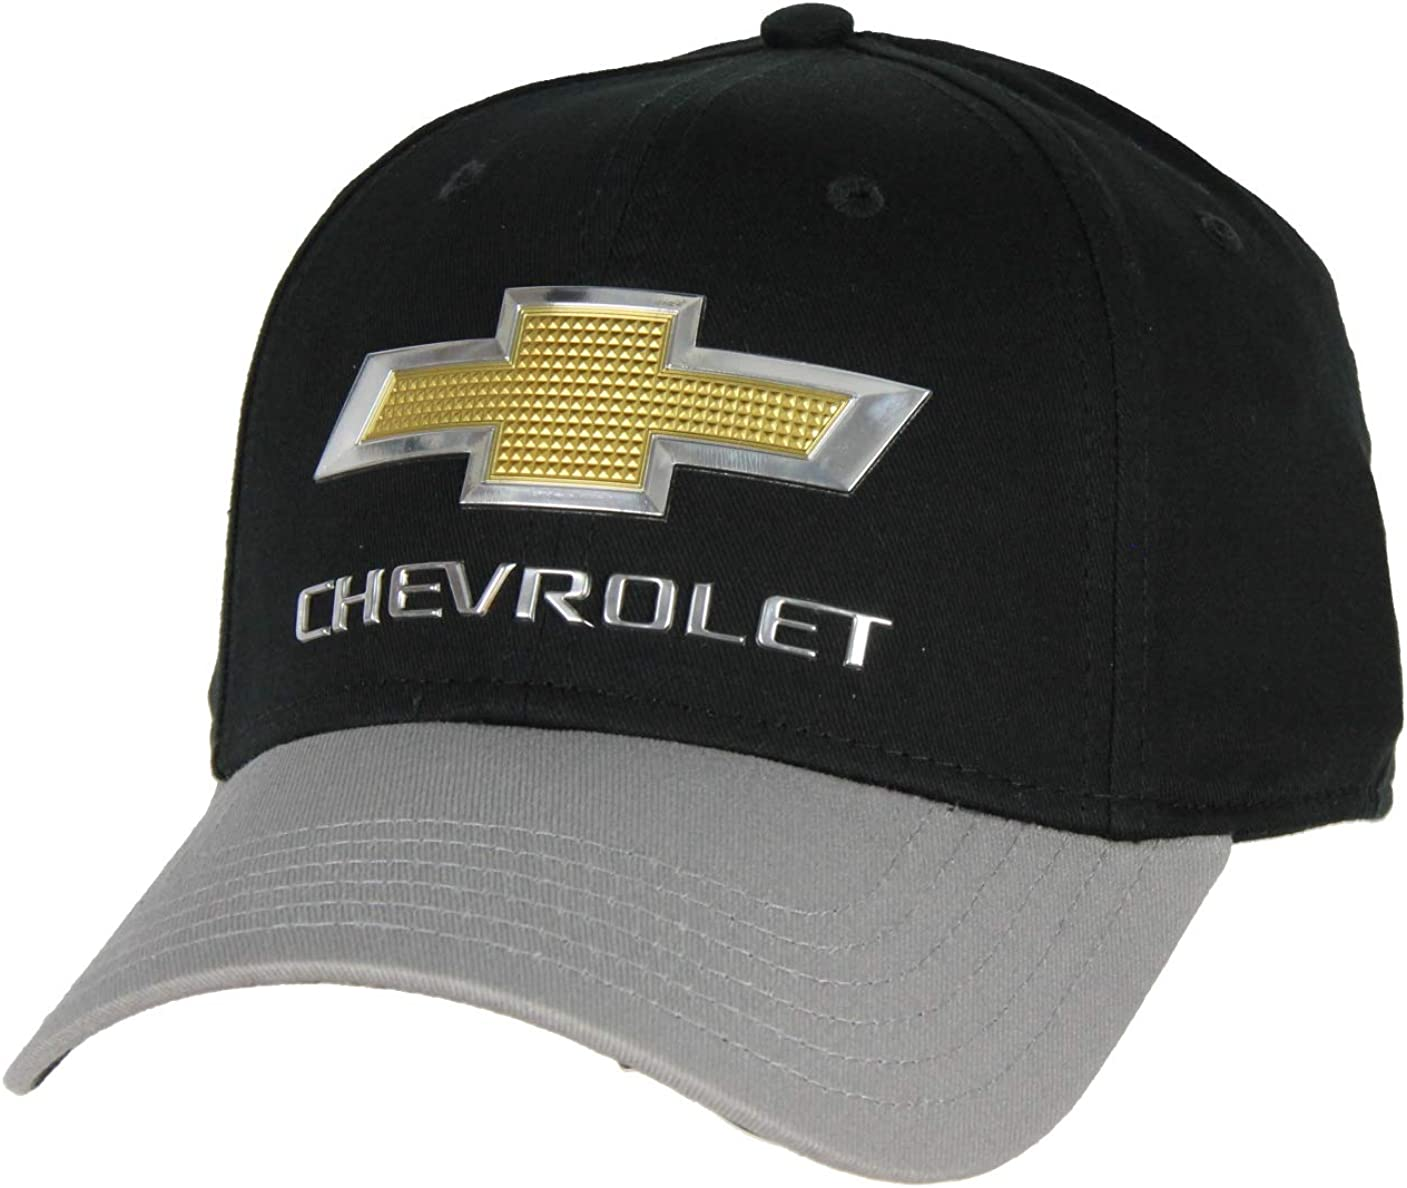 One Size Chevrolet Cotton Hat